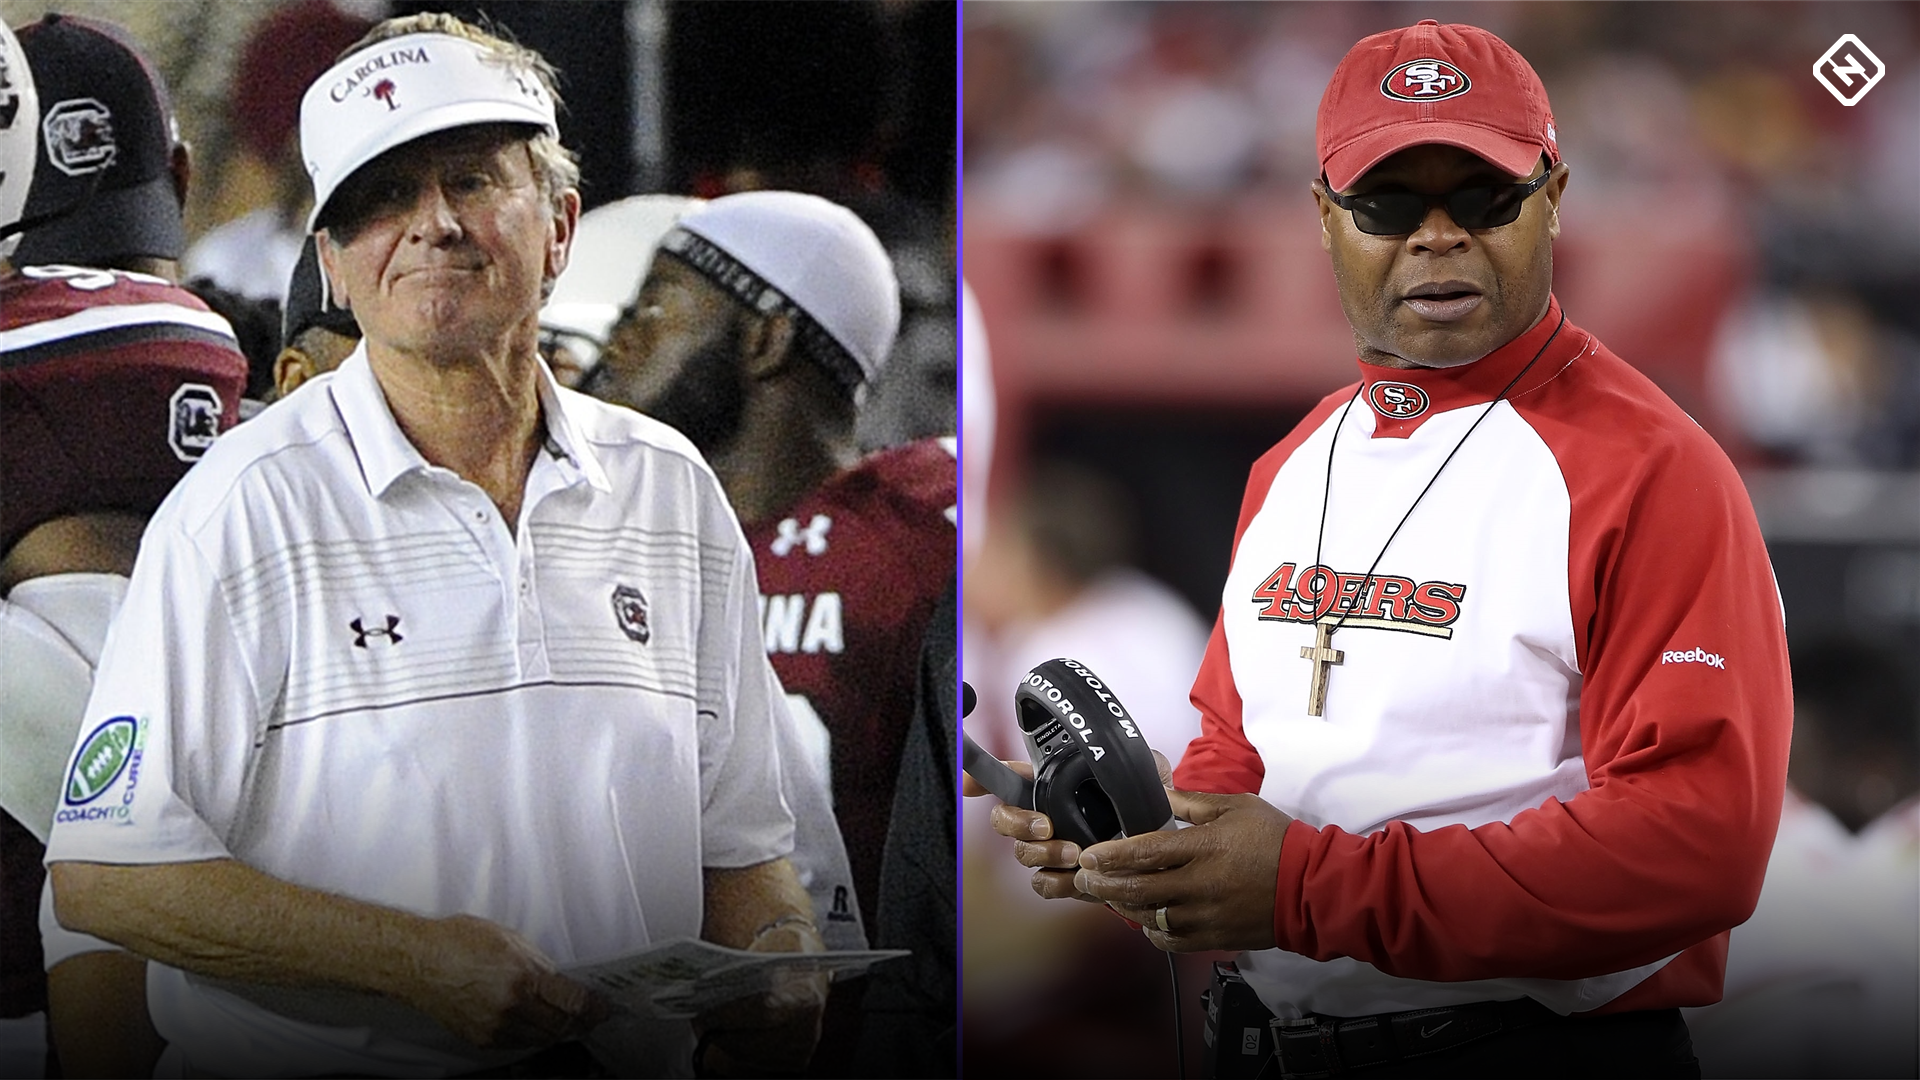 Steve Spurrier, Mike Singletary among potential coaches for upstart Alliance of American Football